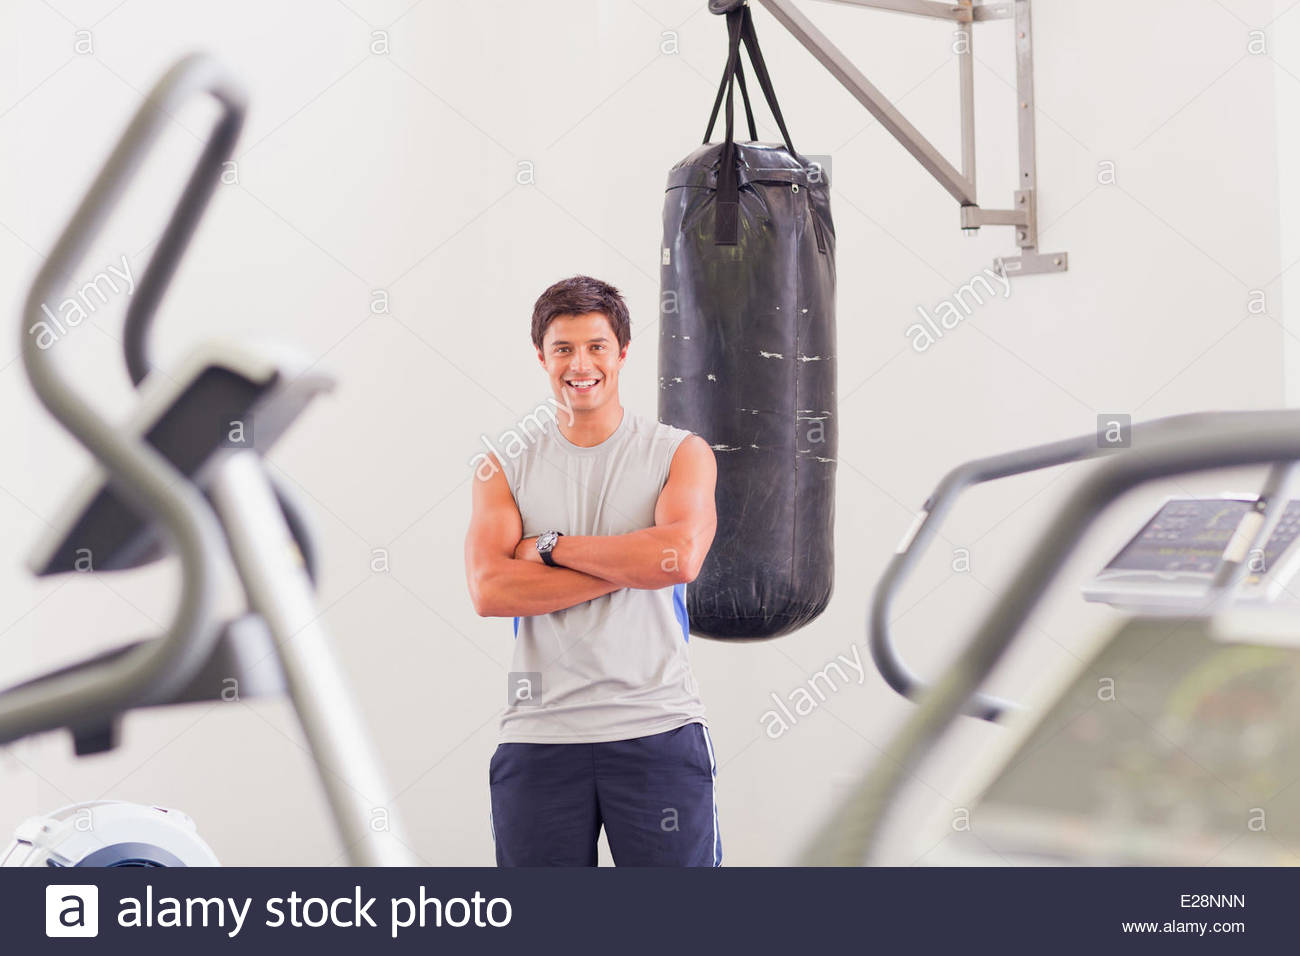 Portrait of smiling man standing at punching bag in gymnasium - Stock Image